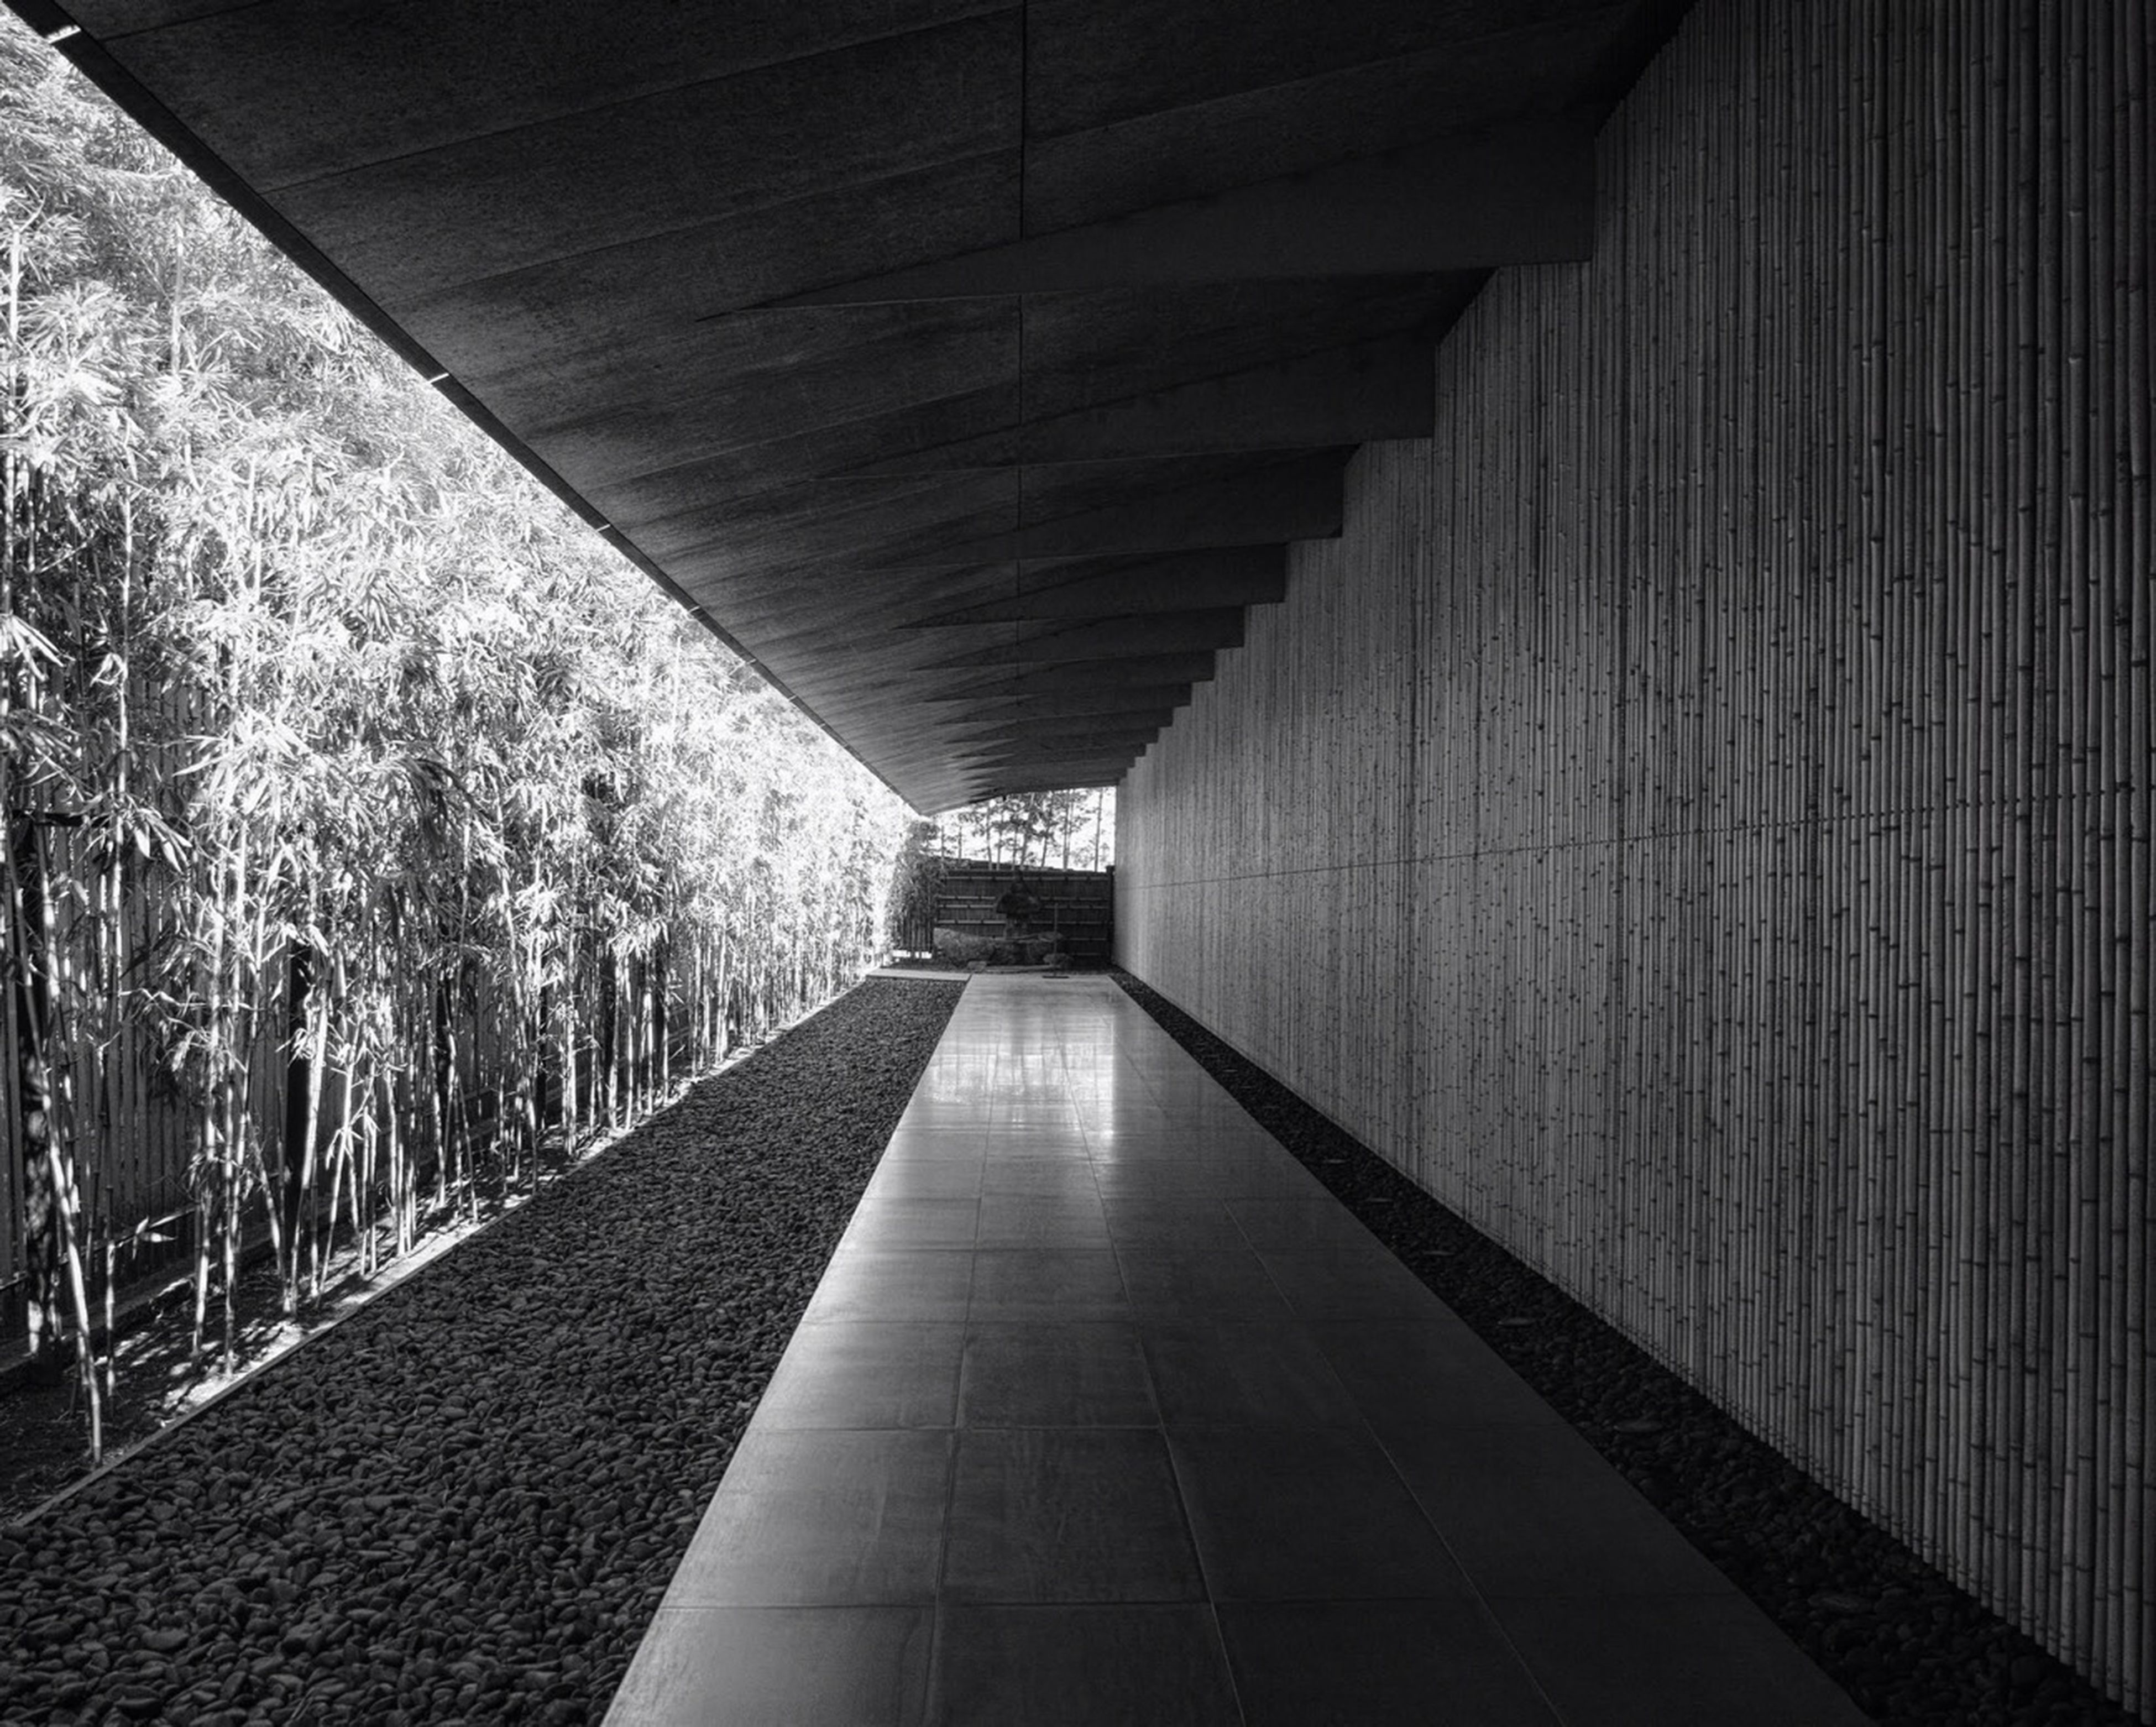 the way forward, architecture, built structure, diminishing perspective, vanishing point, walkway, narrow, in a row, long, indoors, corridor, sunlight, shadow, pathway, railing, footpath, day, empty, ceiling, bridge - man made structure